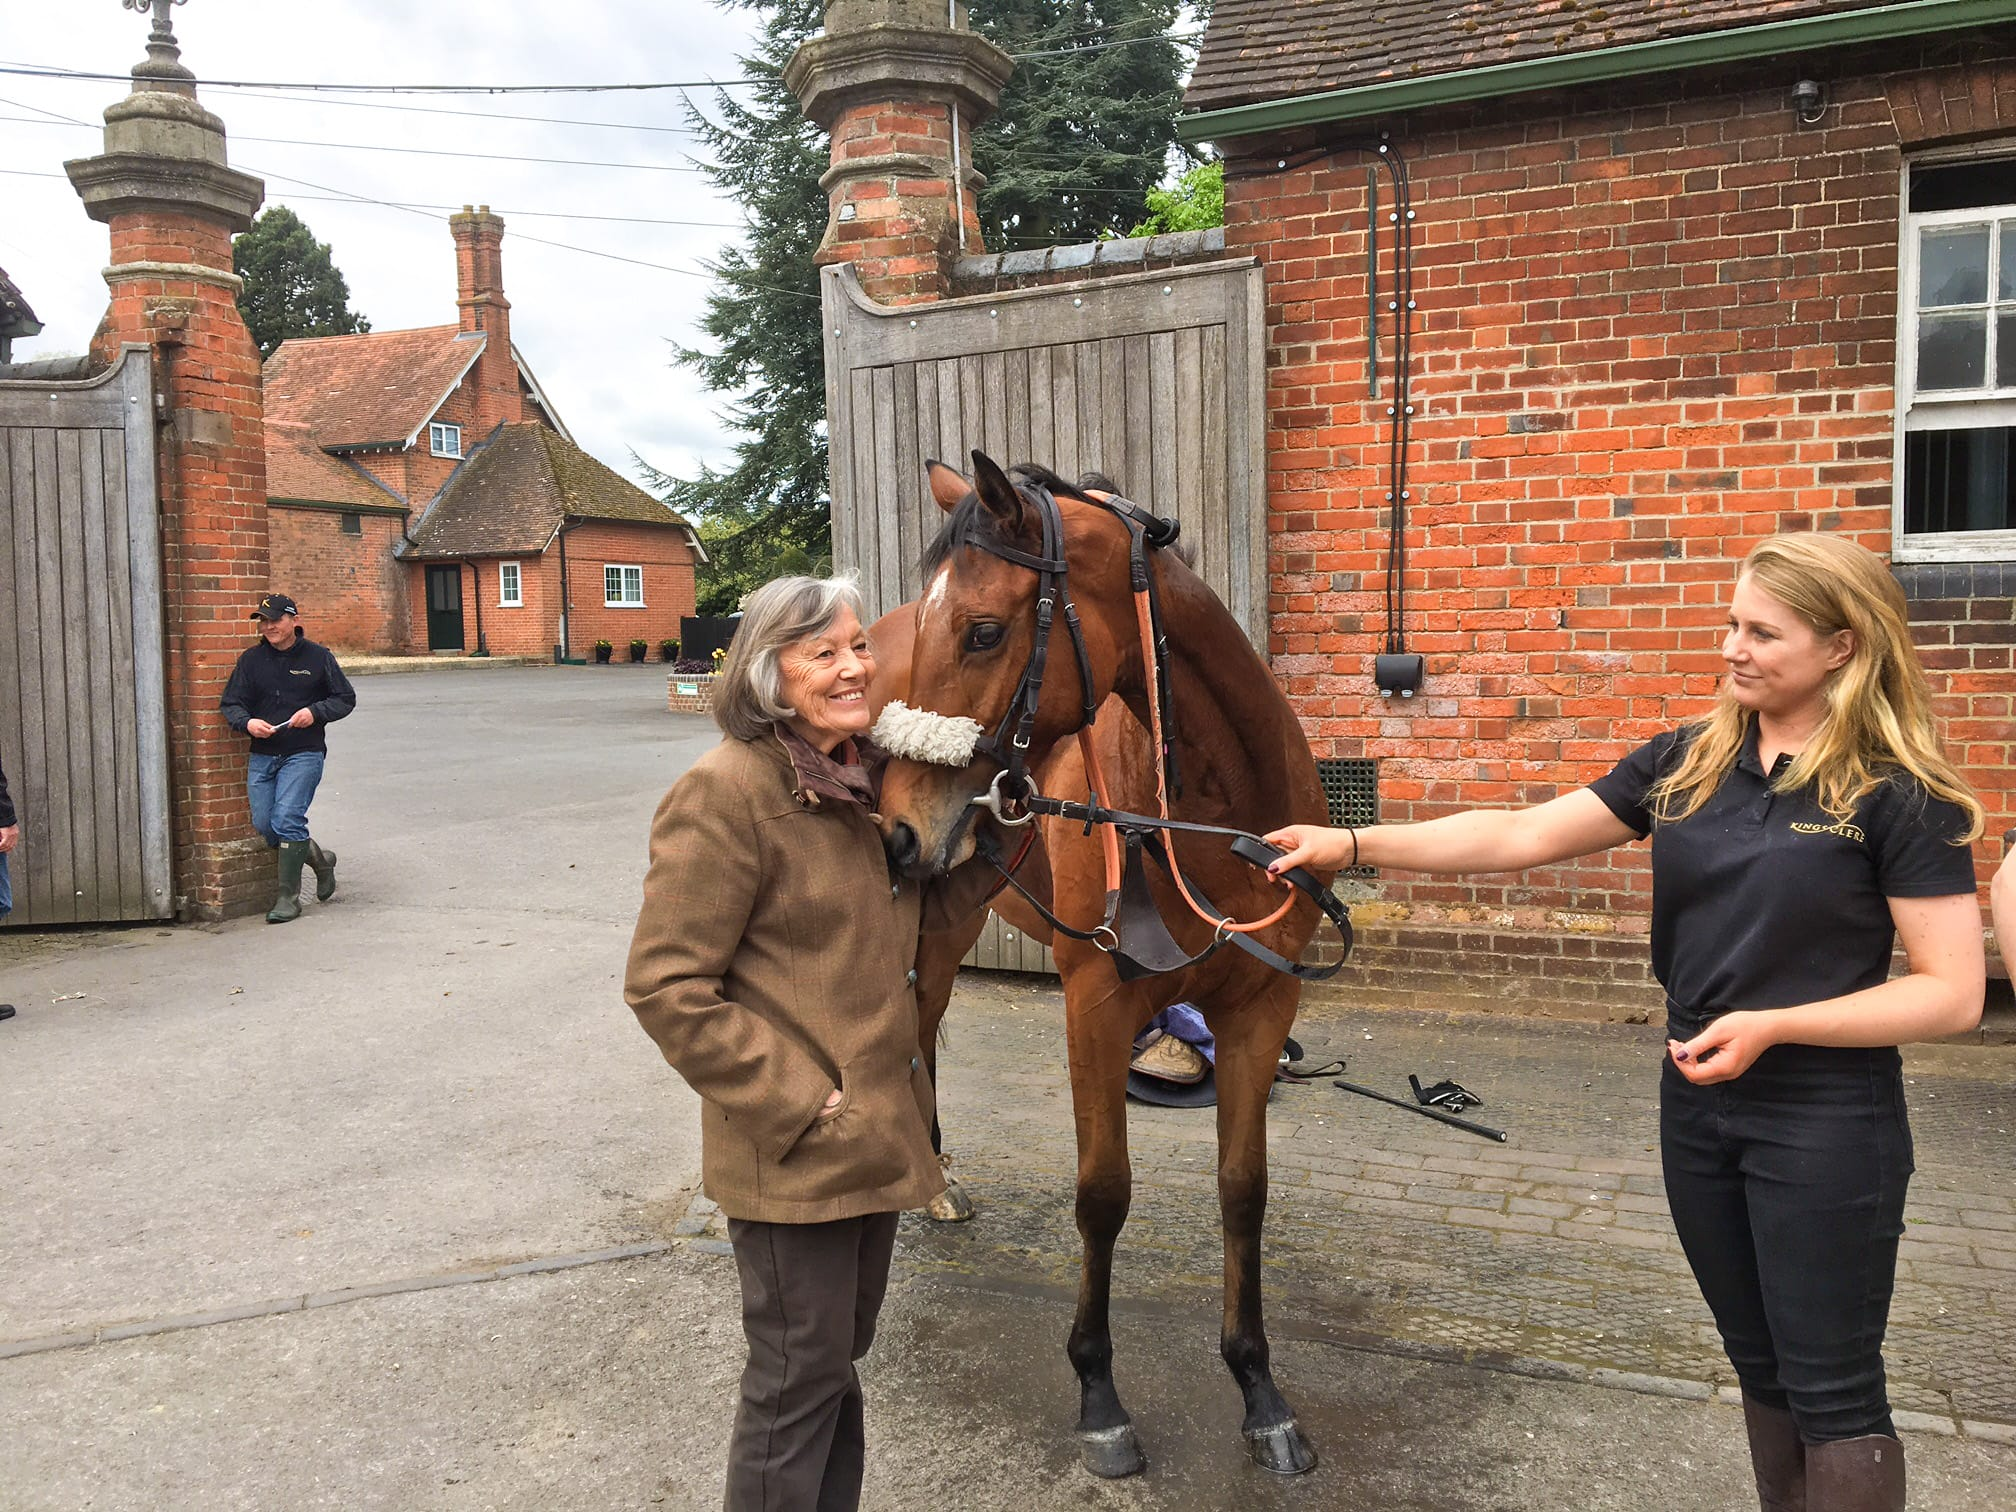 Owner meets Golden Salute at Kingsclere